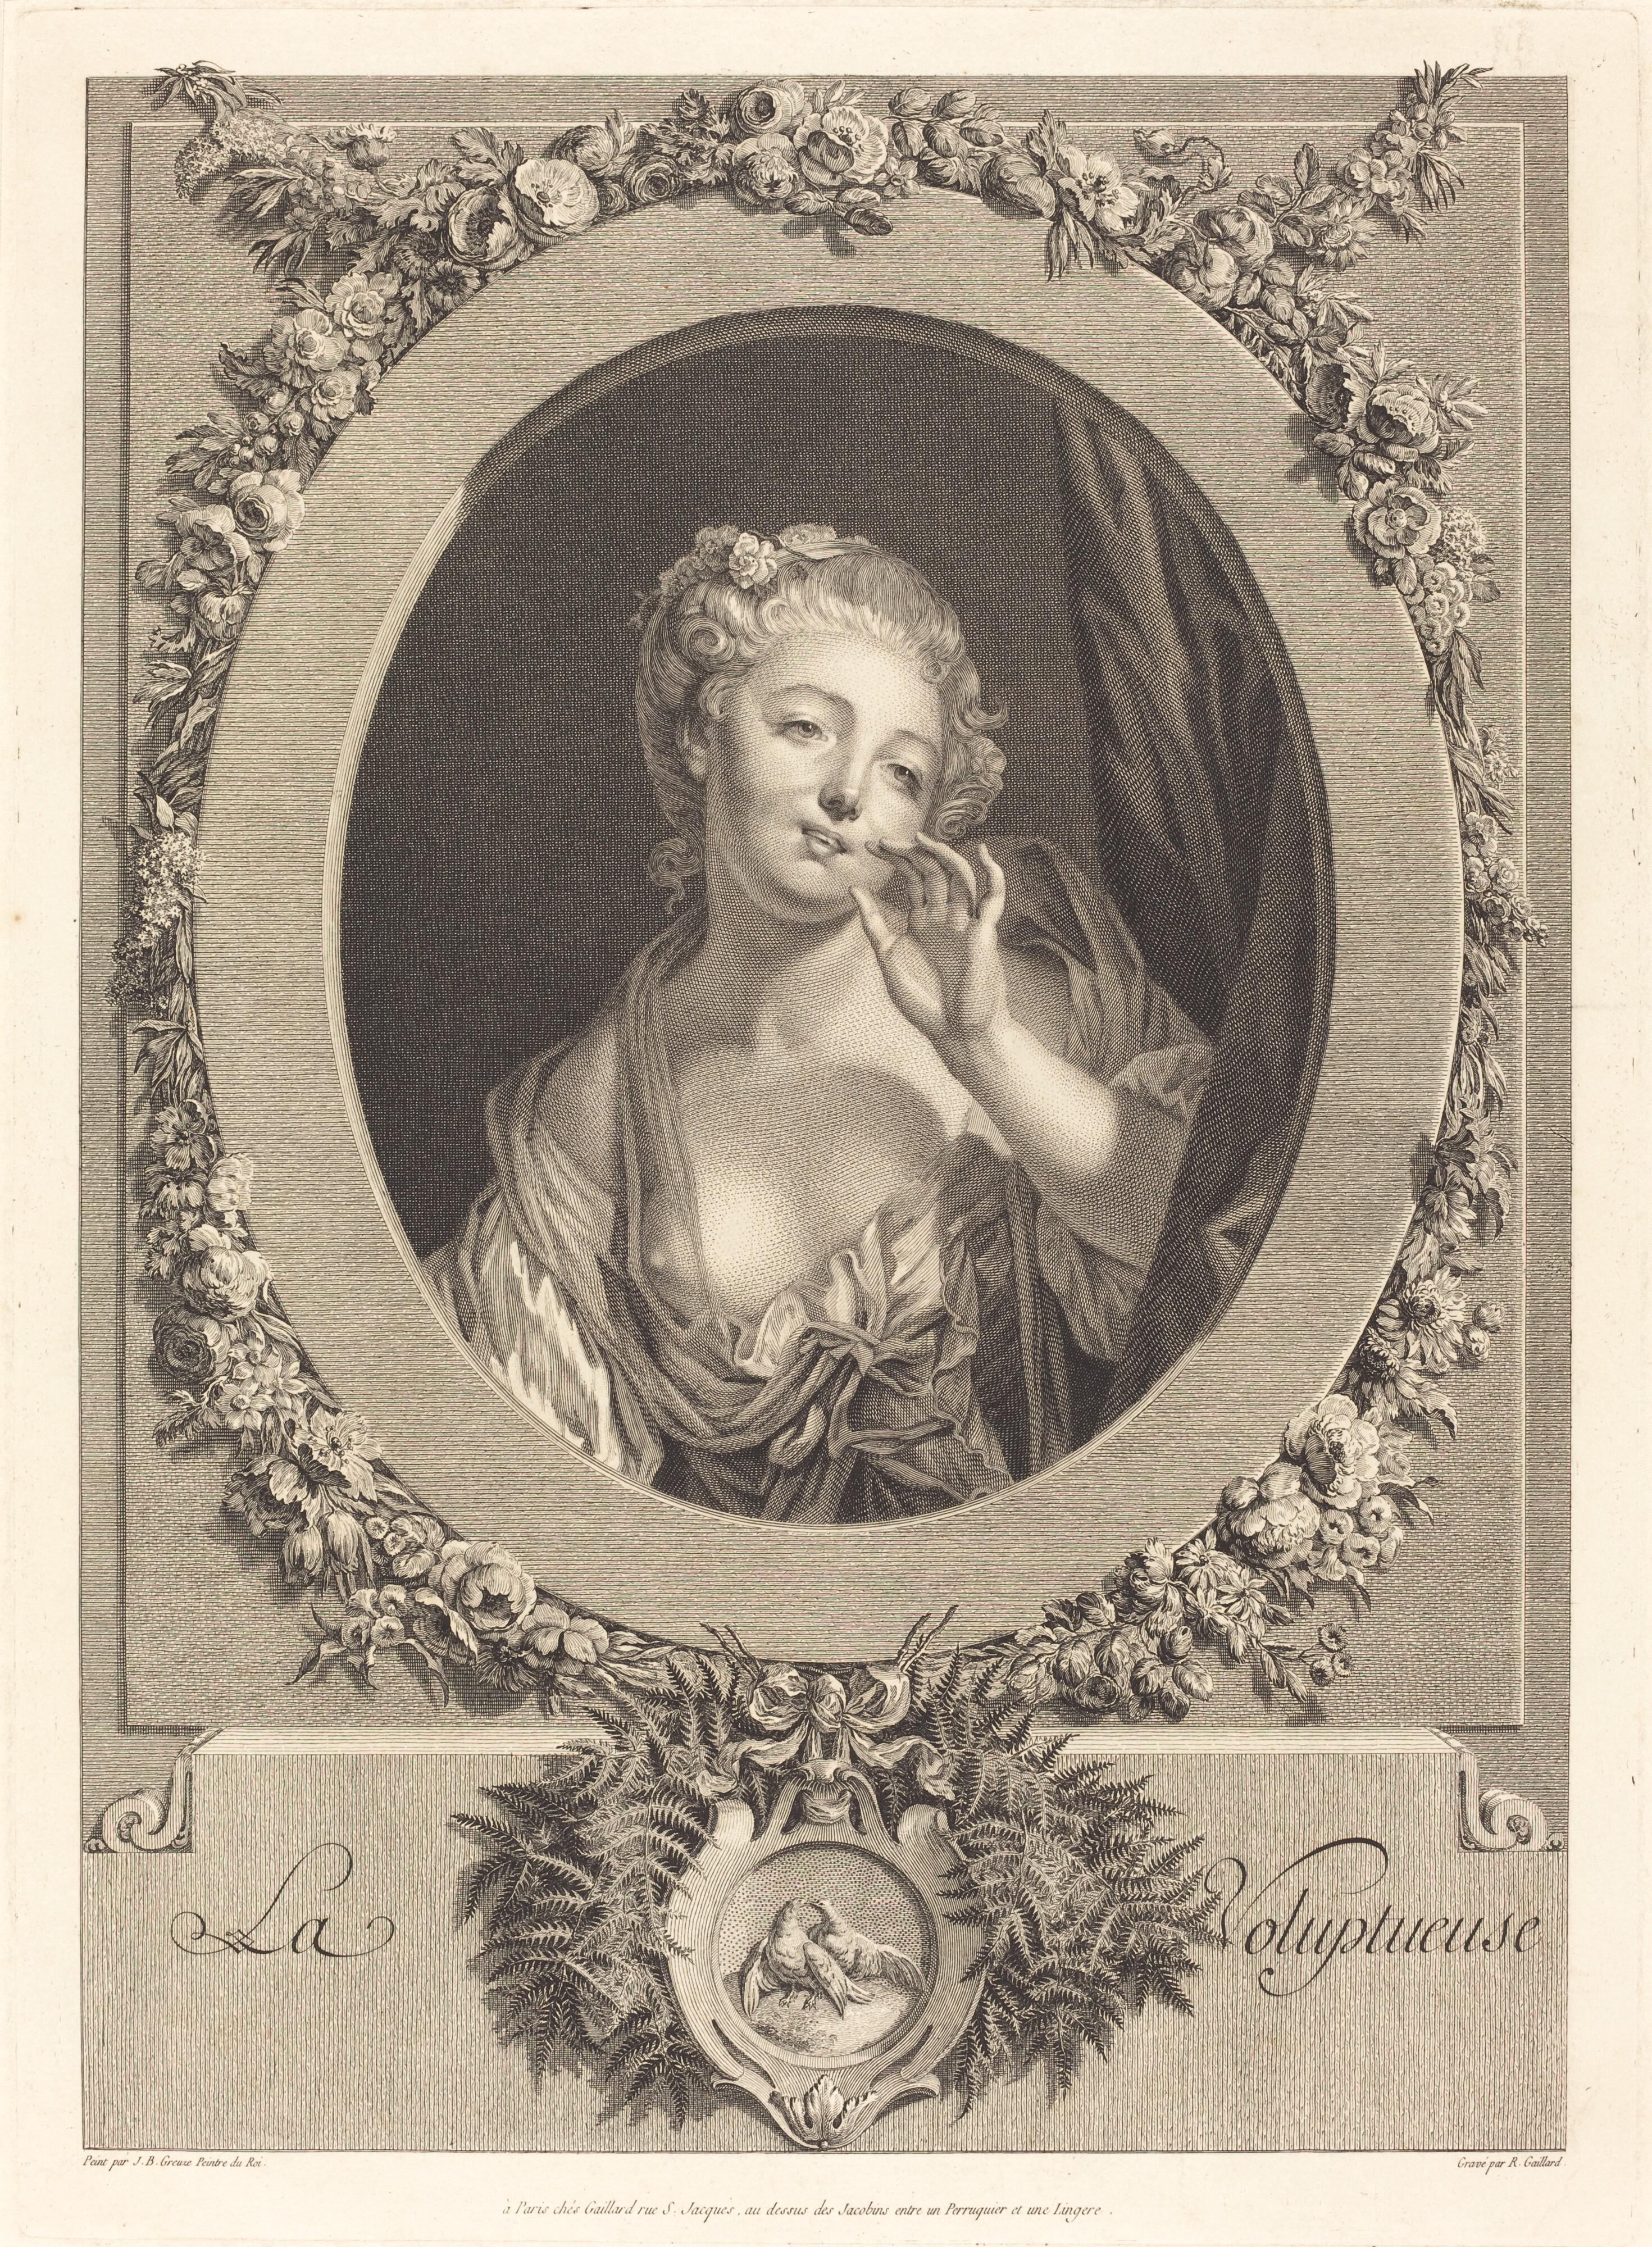 a woman holds a finger to her lips as she gazes out a flower-bedecked oval frame, loose clothing slipping from her shoulder